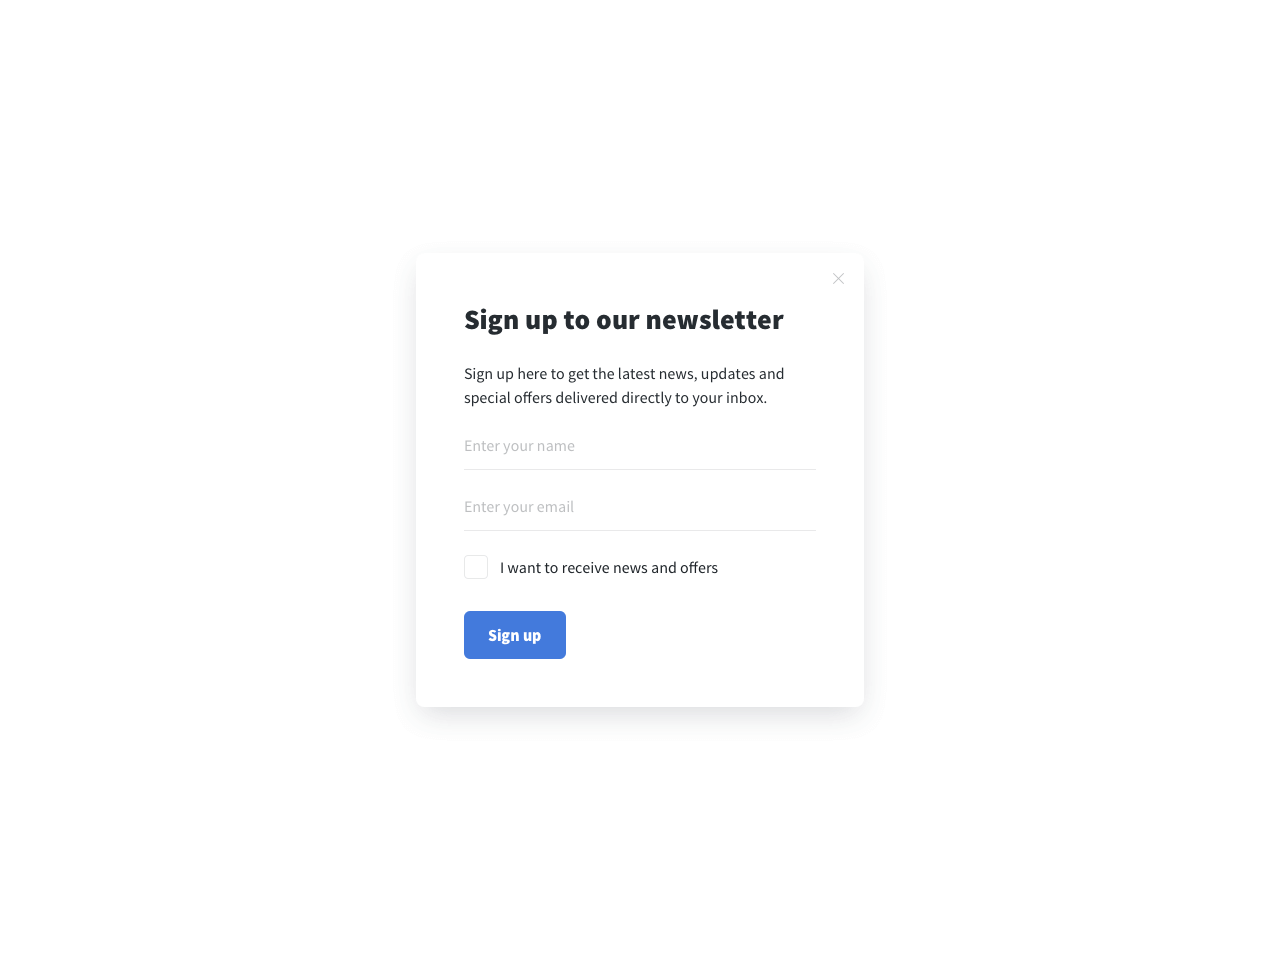 GDPR-compliant newsletter signup form by Getsitecontrol